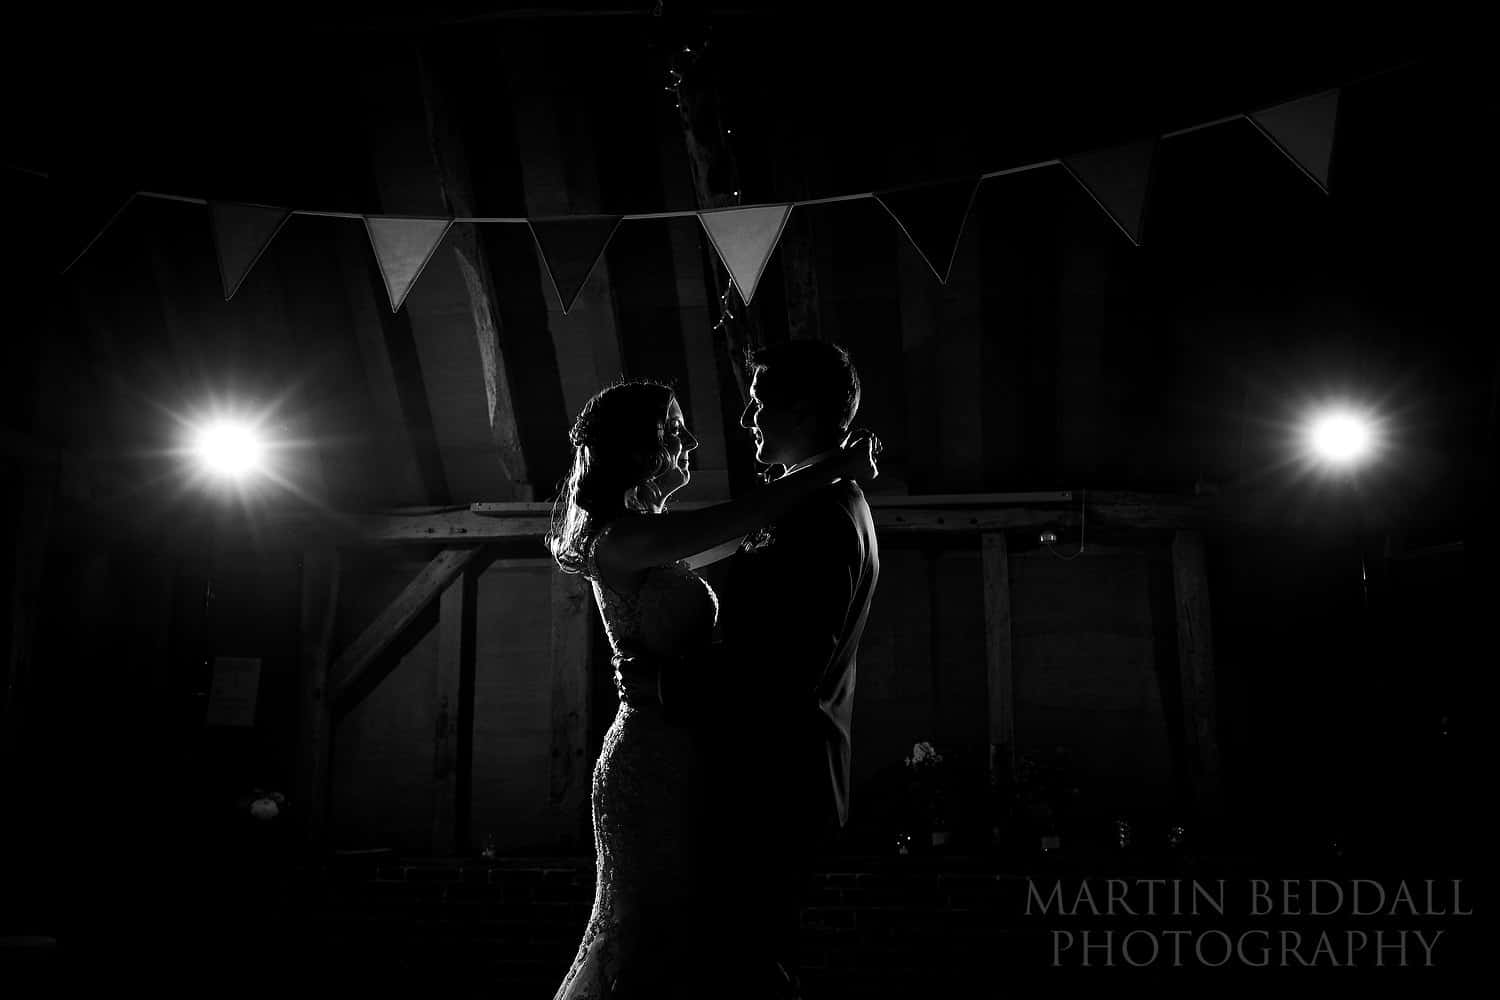 First dance with the Sony 35mm F1.8 lens and Profoto A1 lights